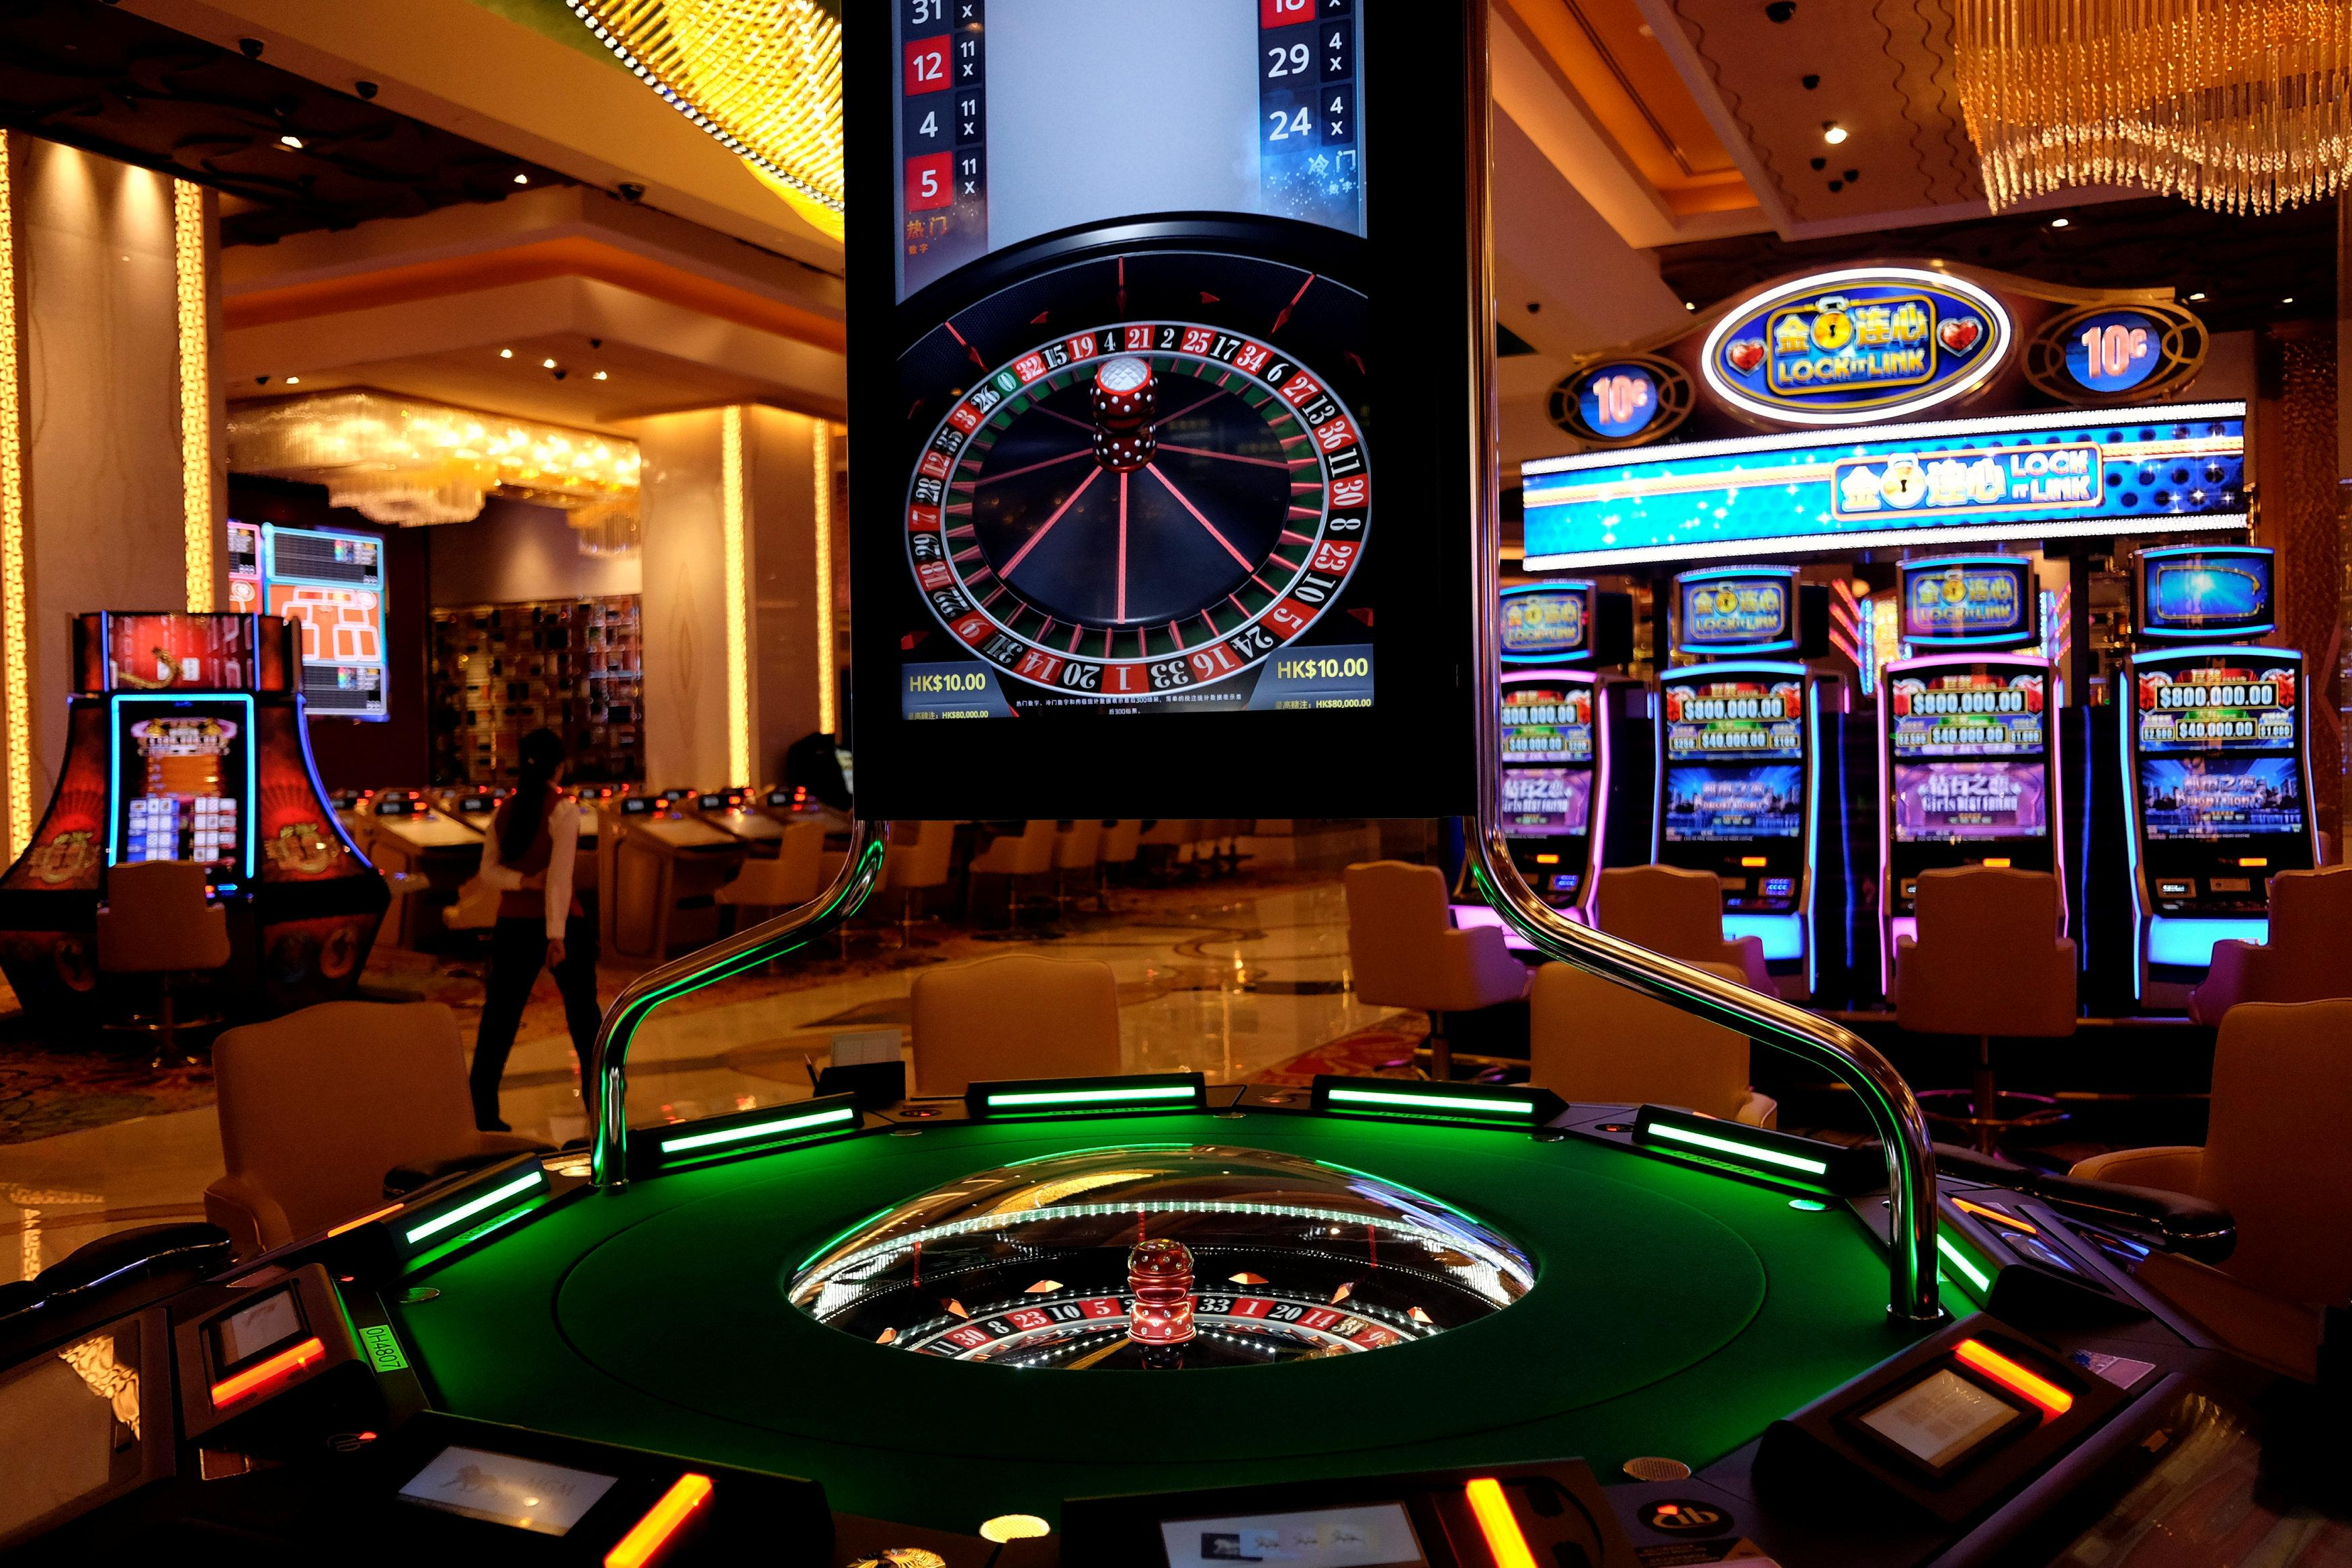 Gaming machines are seen at the casino of MGM Cotai in Macau, China February 13, 2018. Bobby Yip